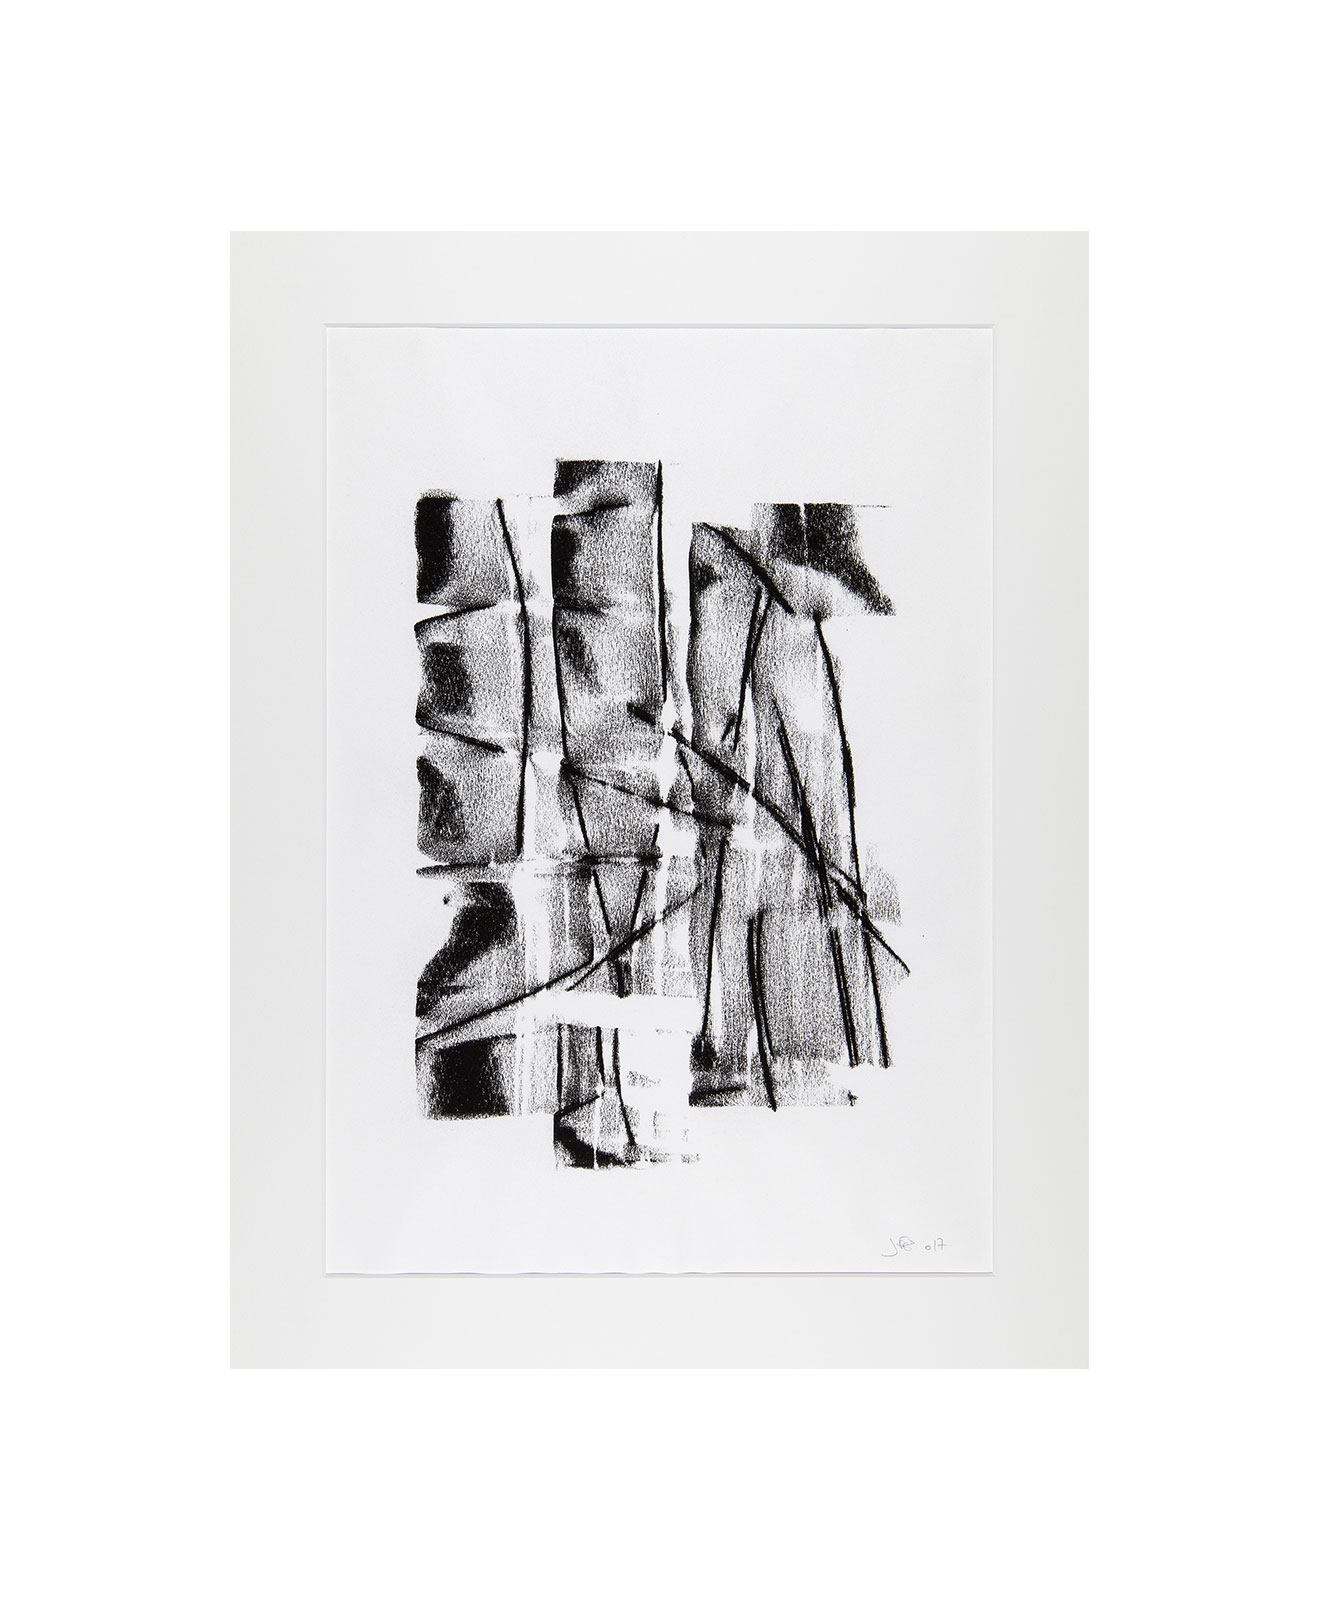 Cha 1.32, Charcoal on paper, black and white artwork, drawing, jf escande, contemporary art